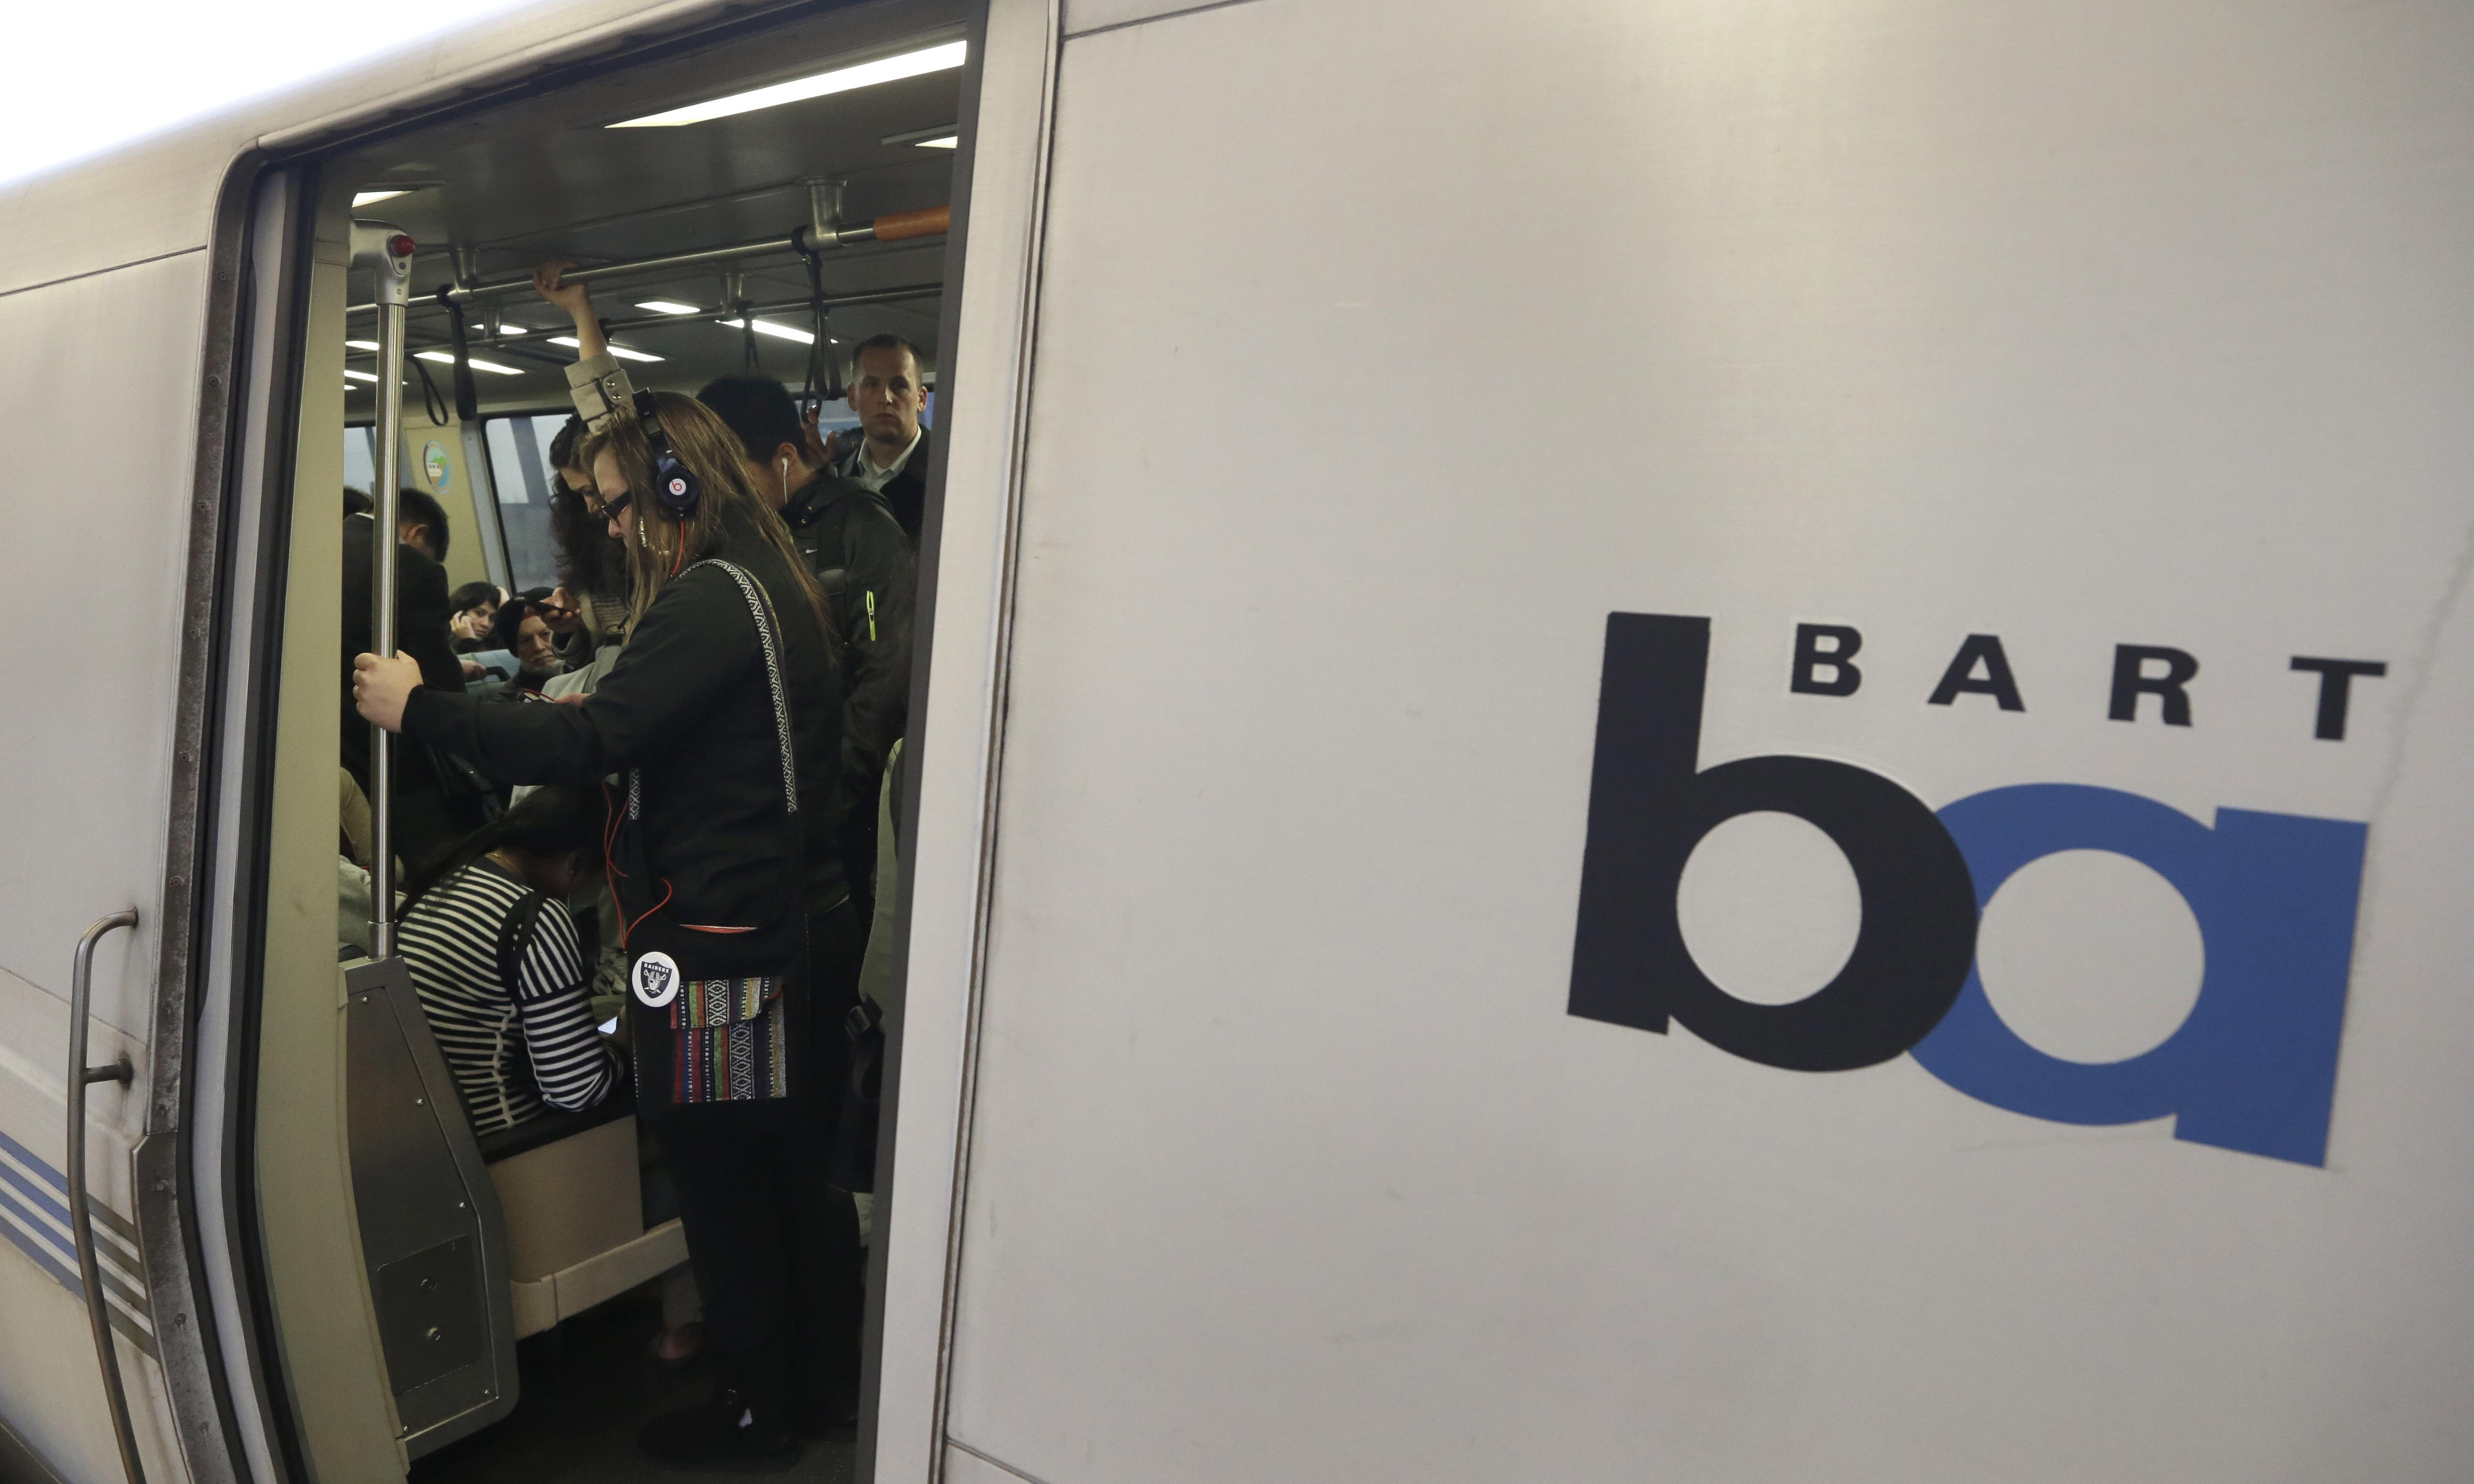 Police cited 55 people for eating on San Francisco trains. Only nine were white